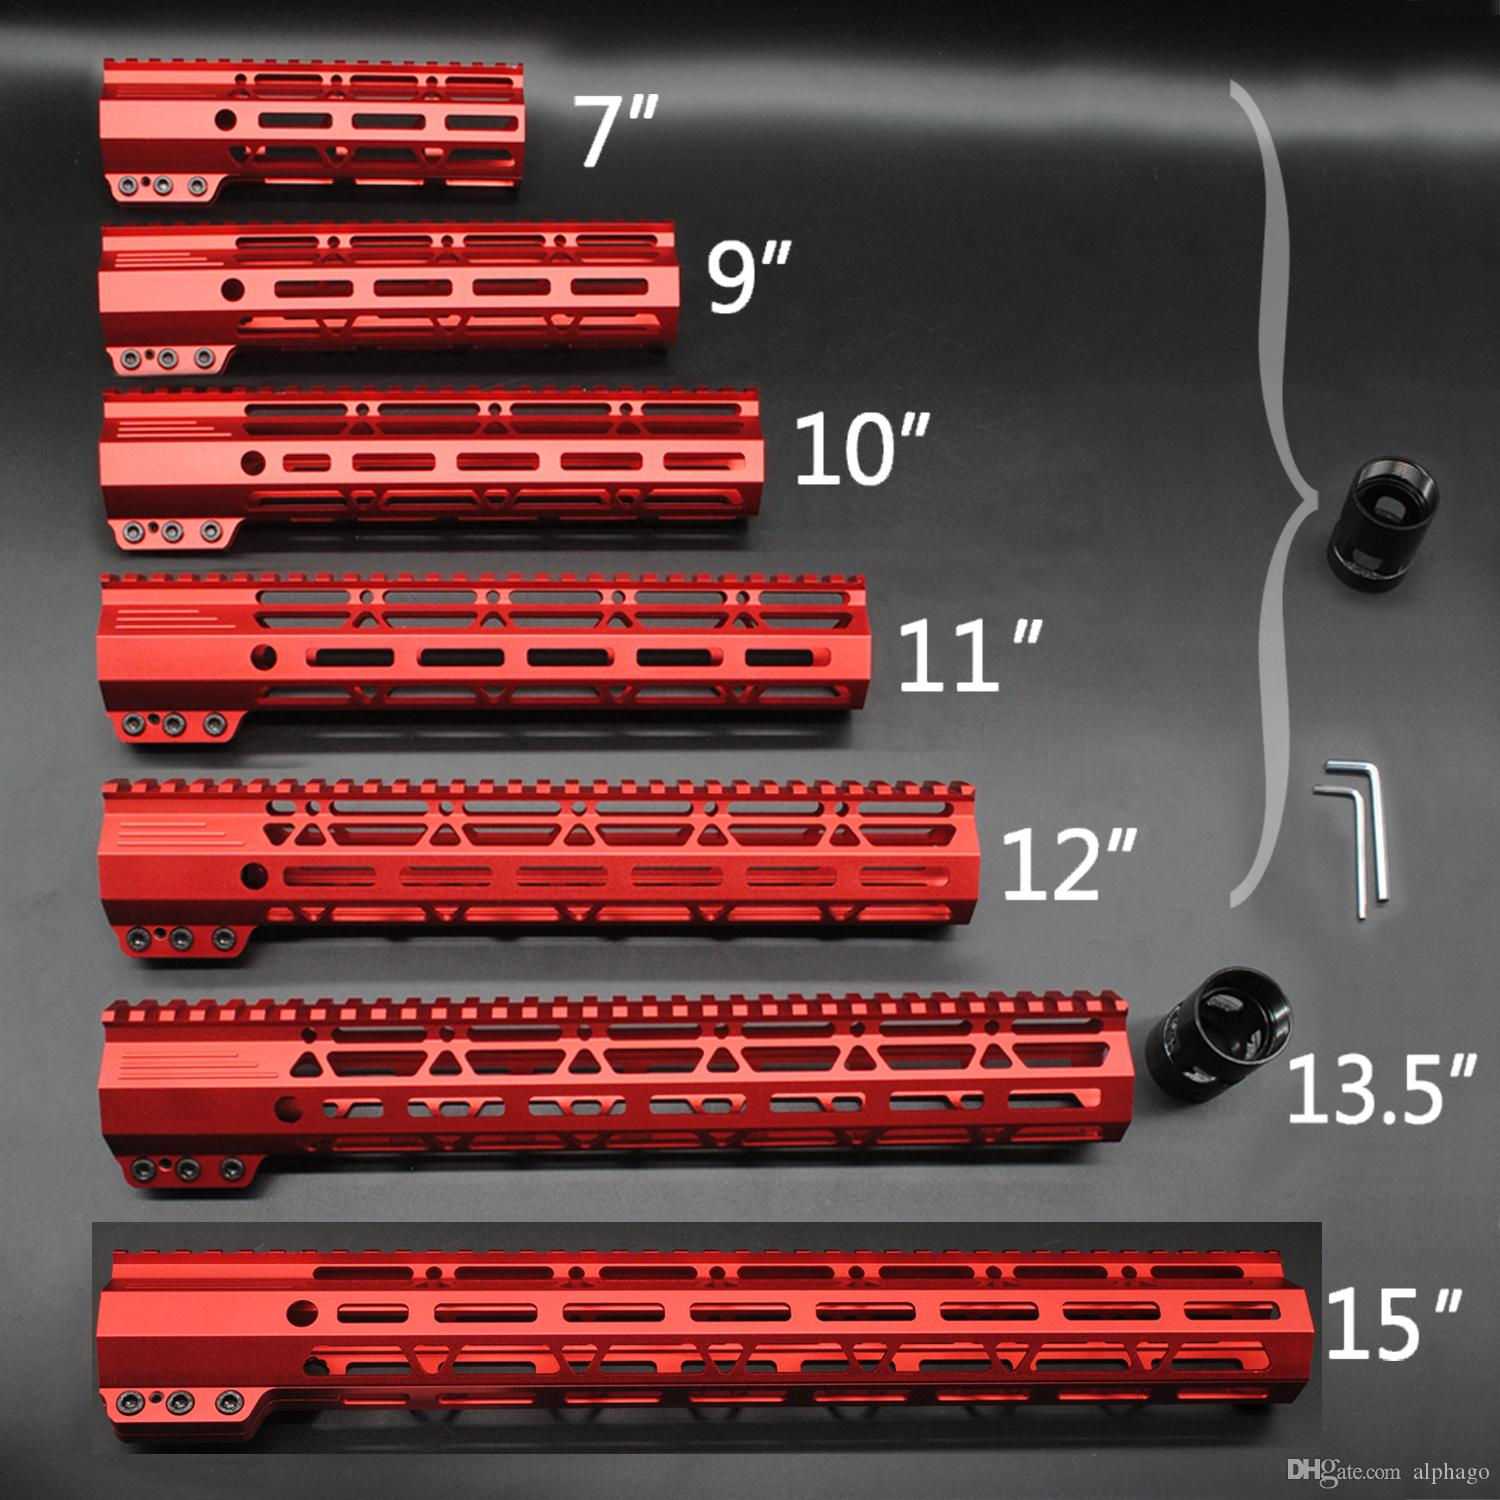 2019 Red Anodized 7 9 10 11 12 135 15 Inch M Lok